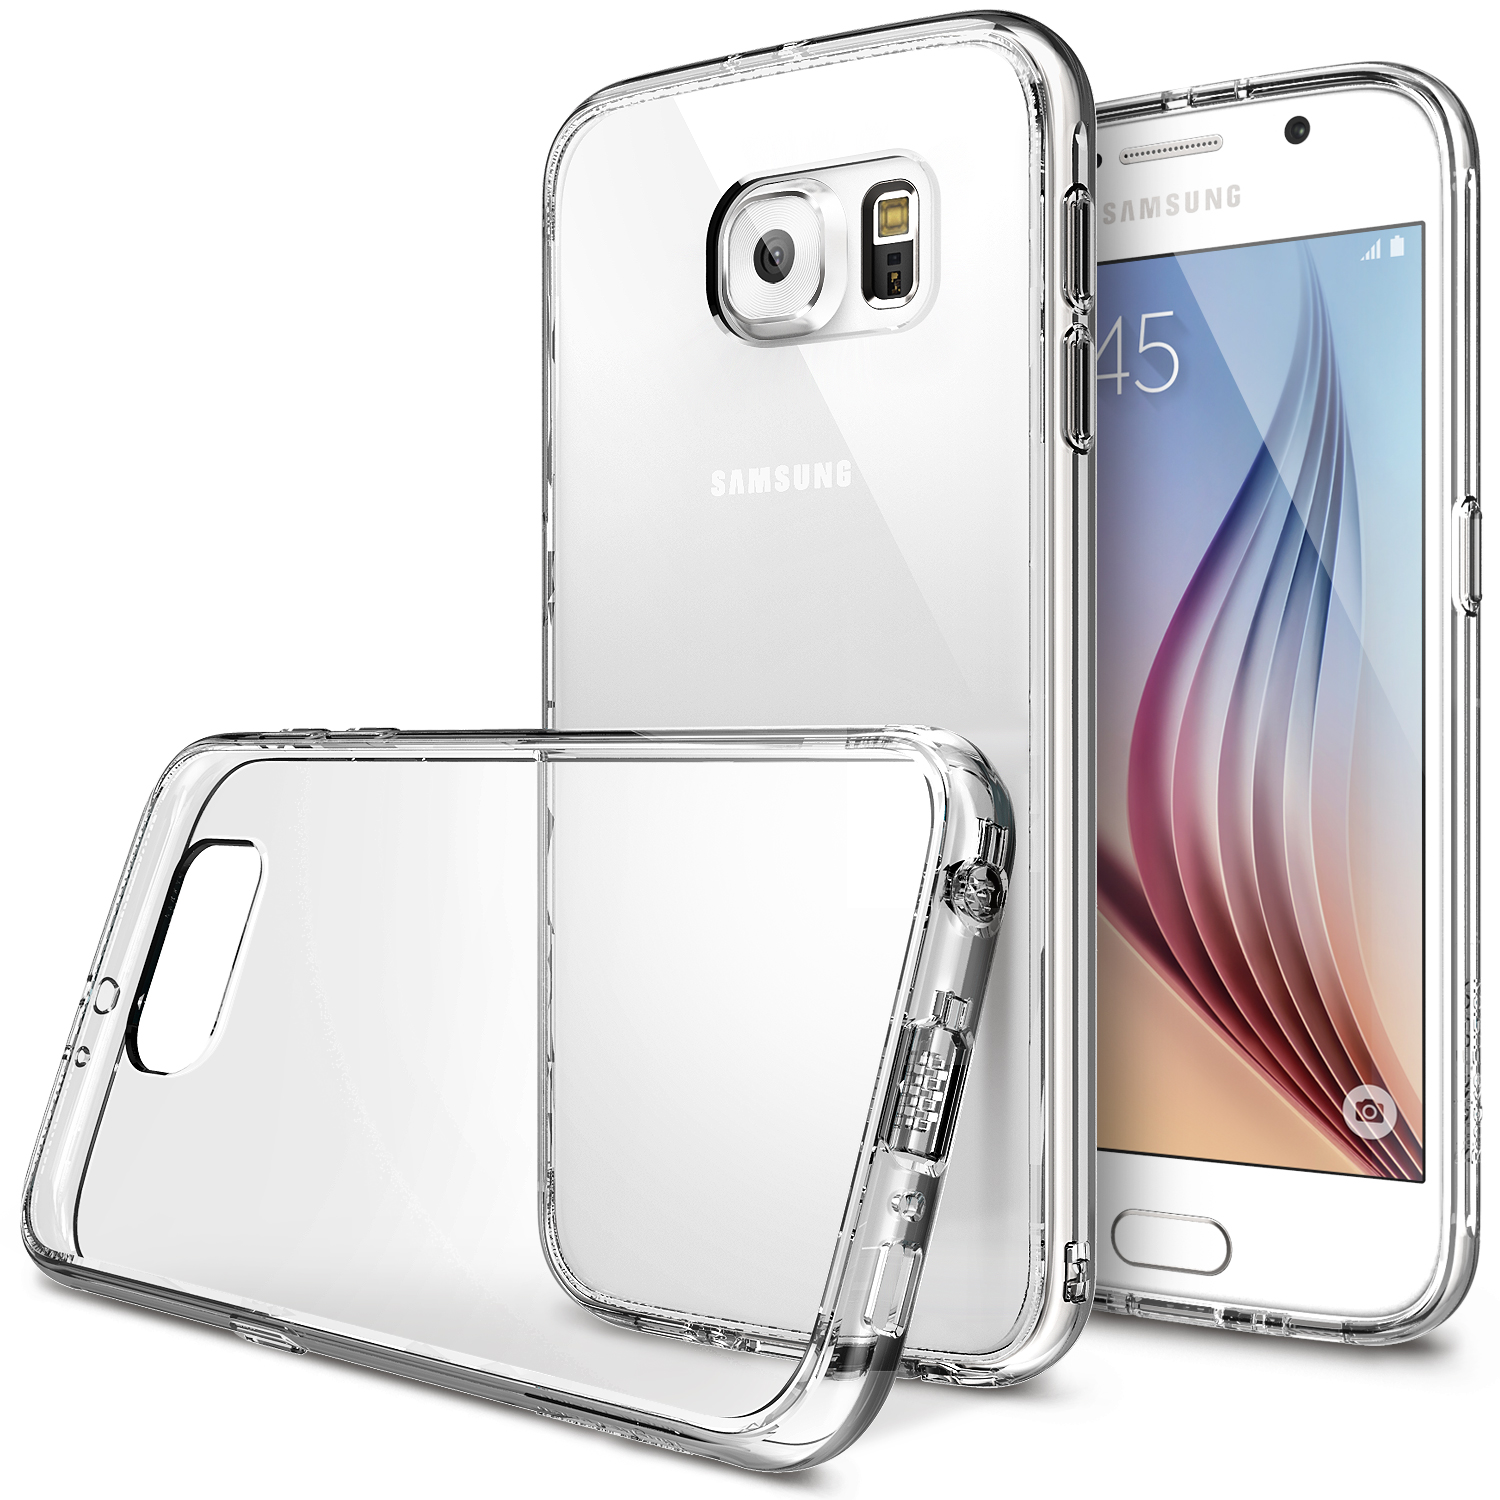 Samsung Galaxy S6 Case, Ringke [Clear] FUSION Series Featuring Shock Absorption TPU Bumper with Hard Polycarbonate Back w/ Free Screen Protector